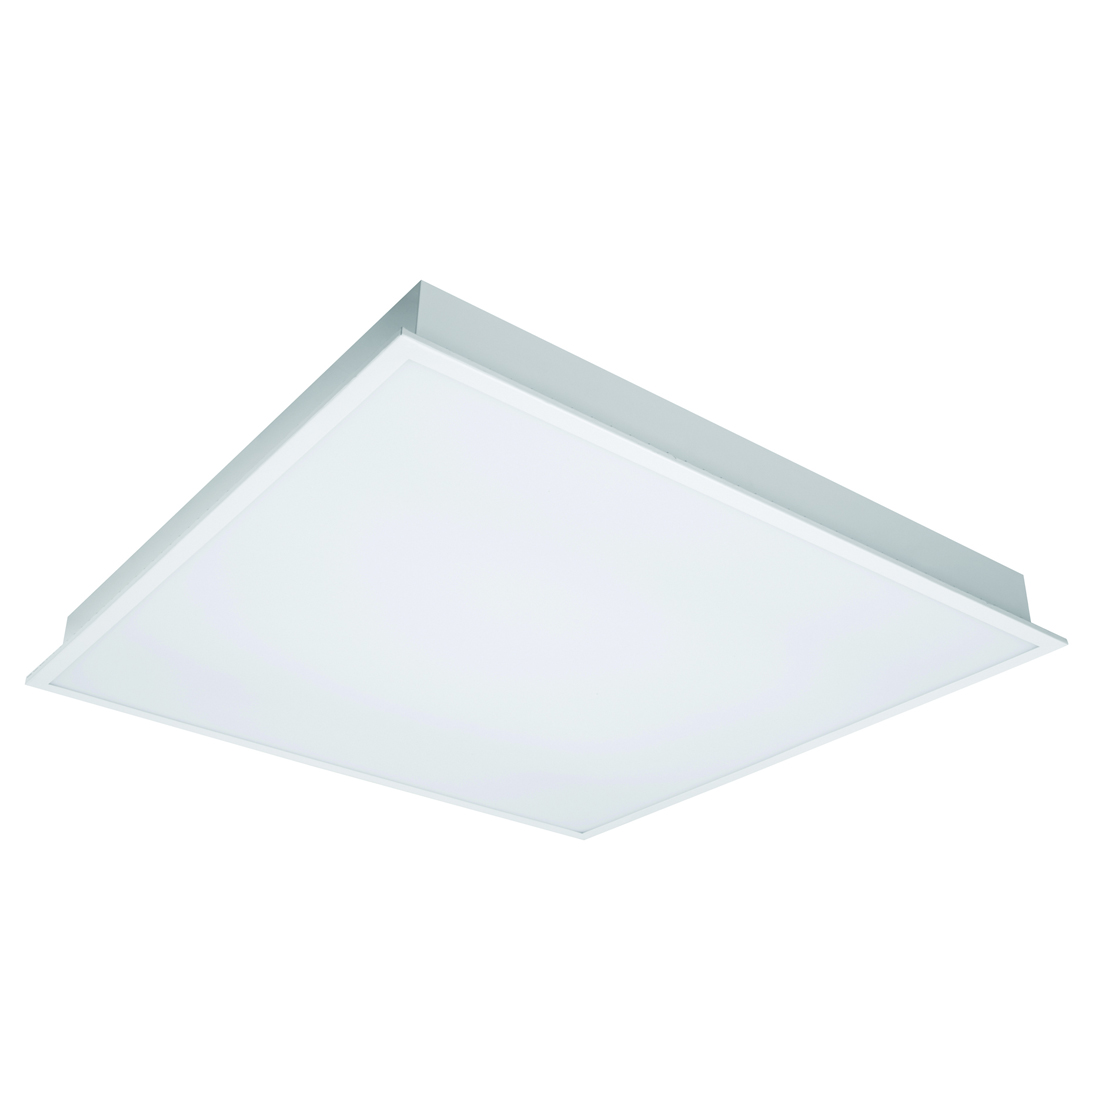 22PNL35/850/LED 80901 LED FLAT PANEL 2X2 35W 5000K DIMMABLE ProLED